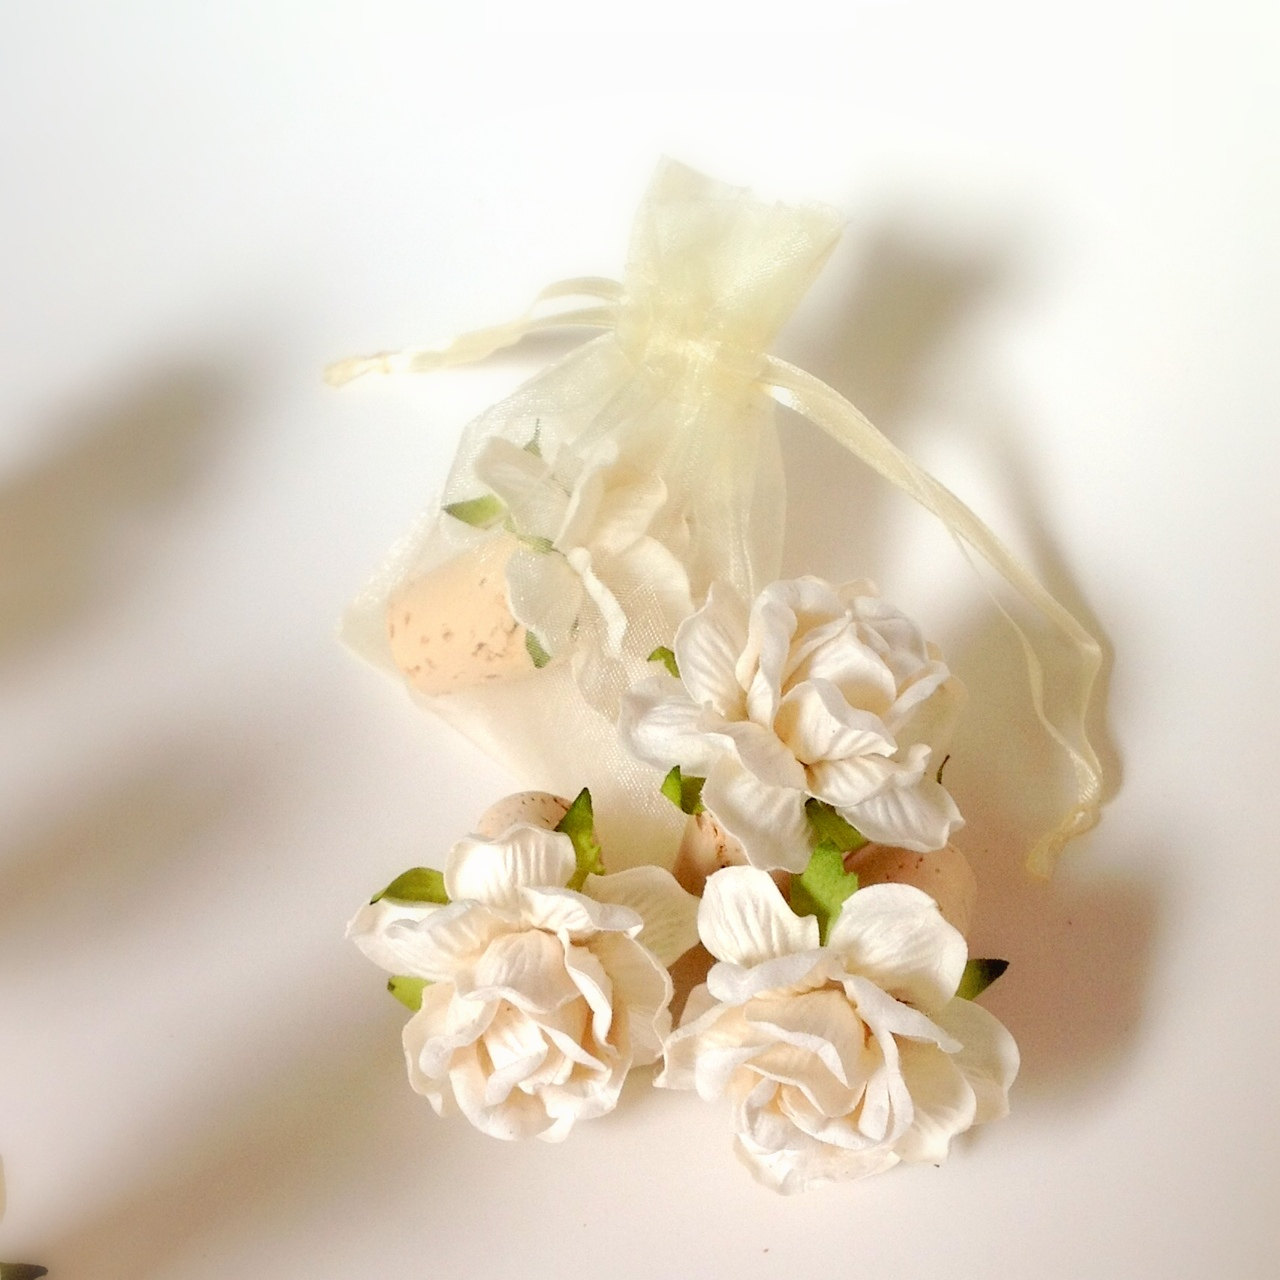 white flower - Wine Bottle Stopper Favors